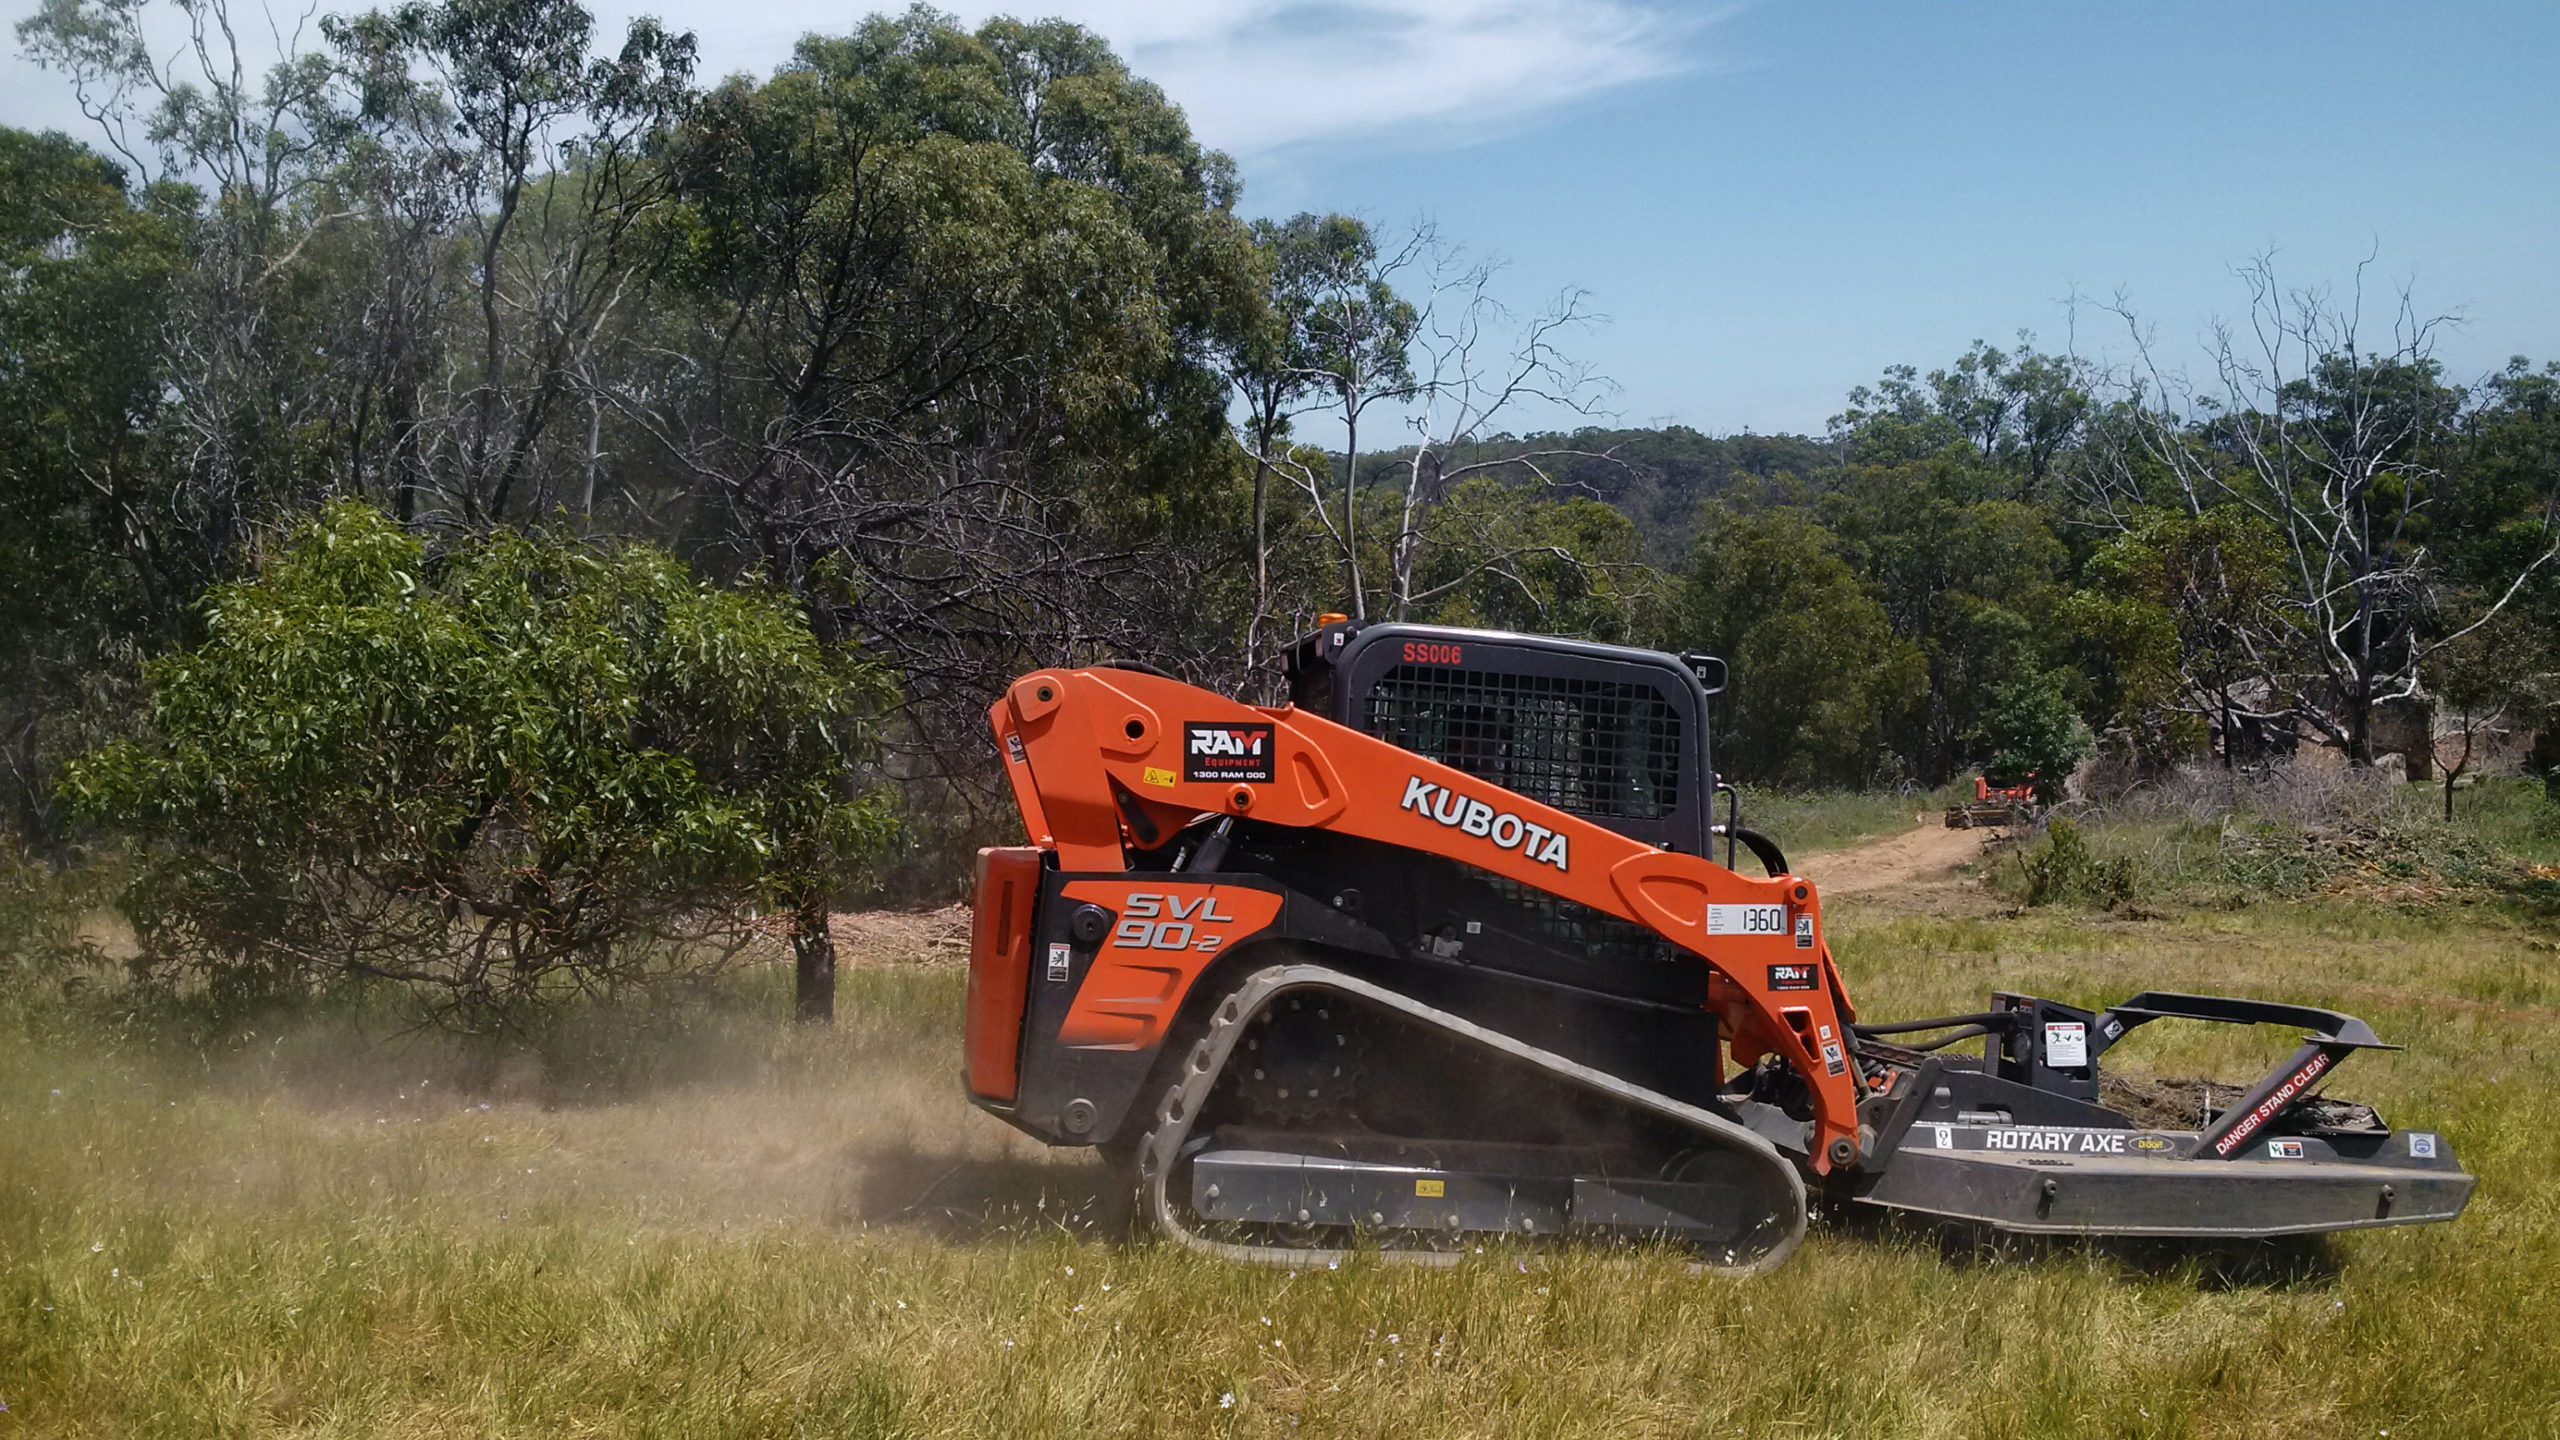 Equipment to deliver high-quality replacement Kubota skid steer loader recognized for their exceptional design, function, and long service life.